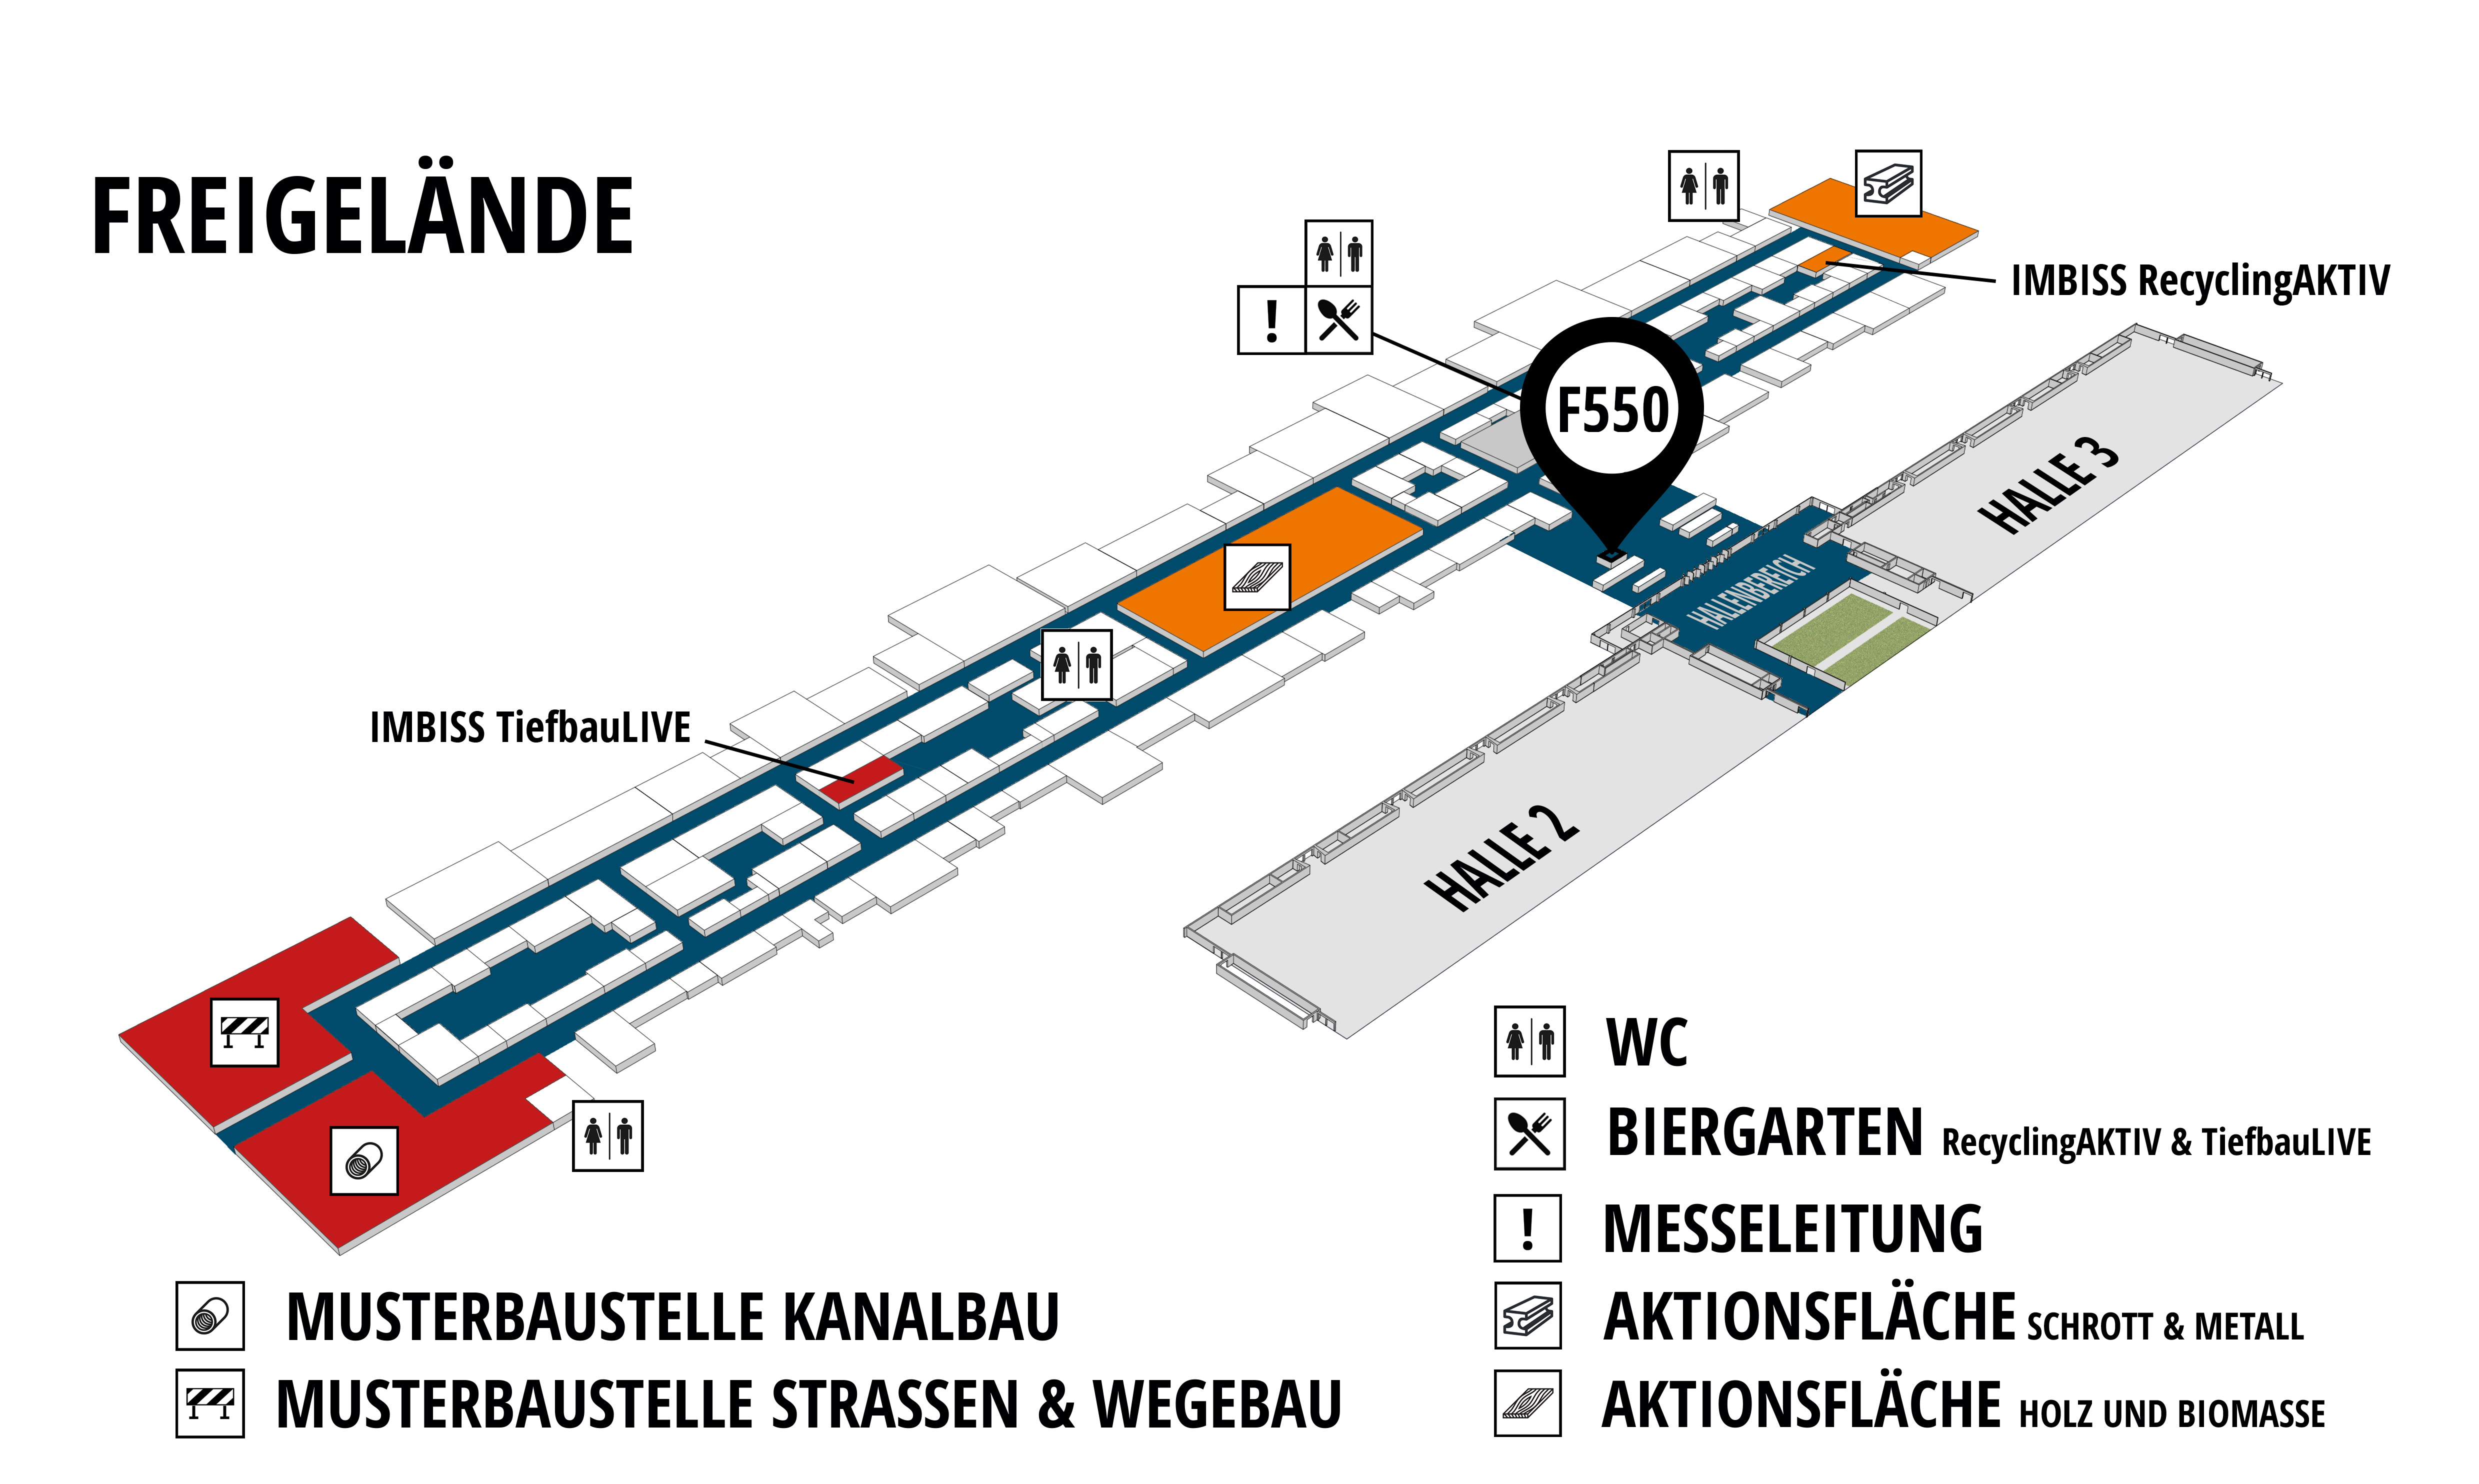 RecyclingAKTIV & TiefbauLIVE 2019. The Demonstration Trade Fairs ||Demonstration trade fair for waste removal and recycling. Demonstration trade fair for road construction and civil engineering. hall map (Outdoor area (east)): stand F550